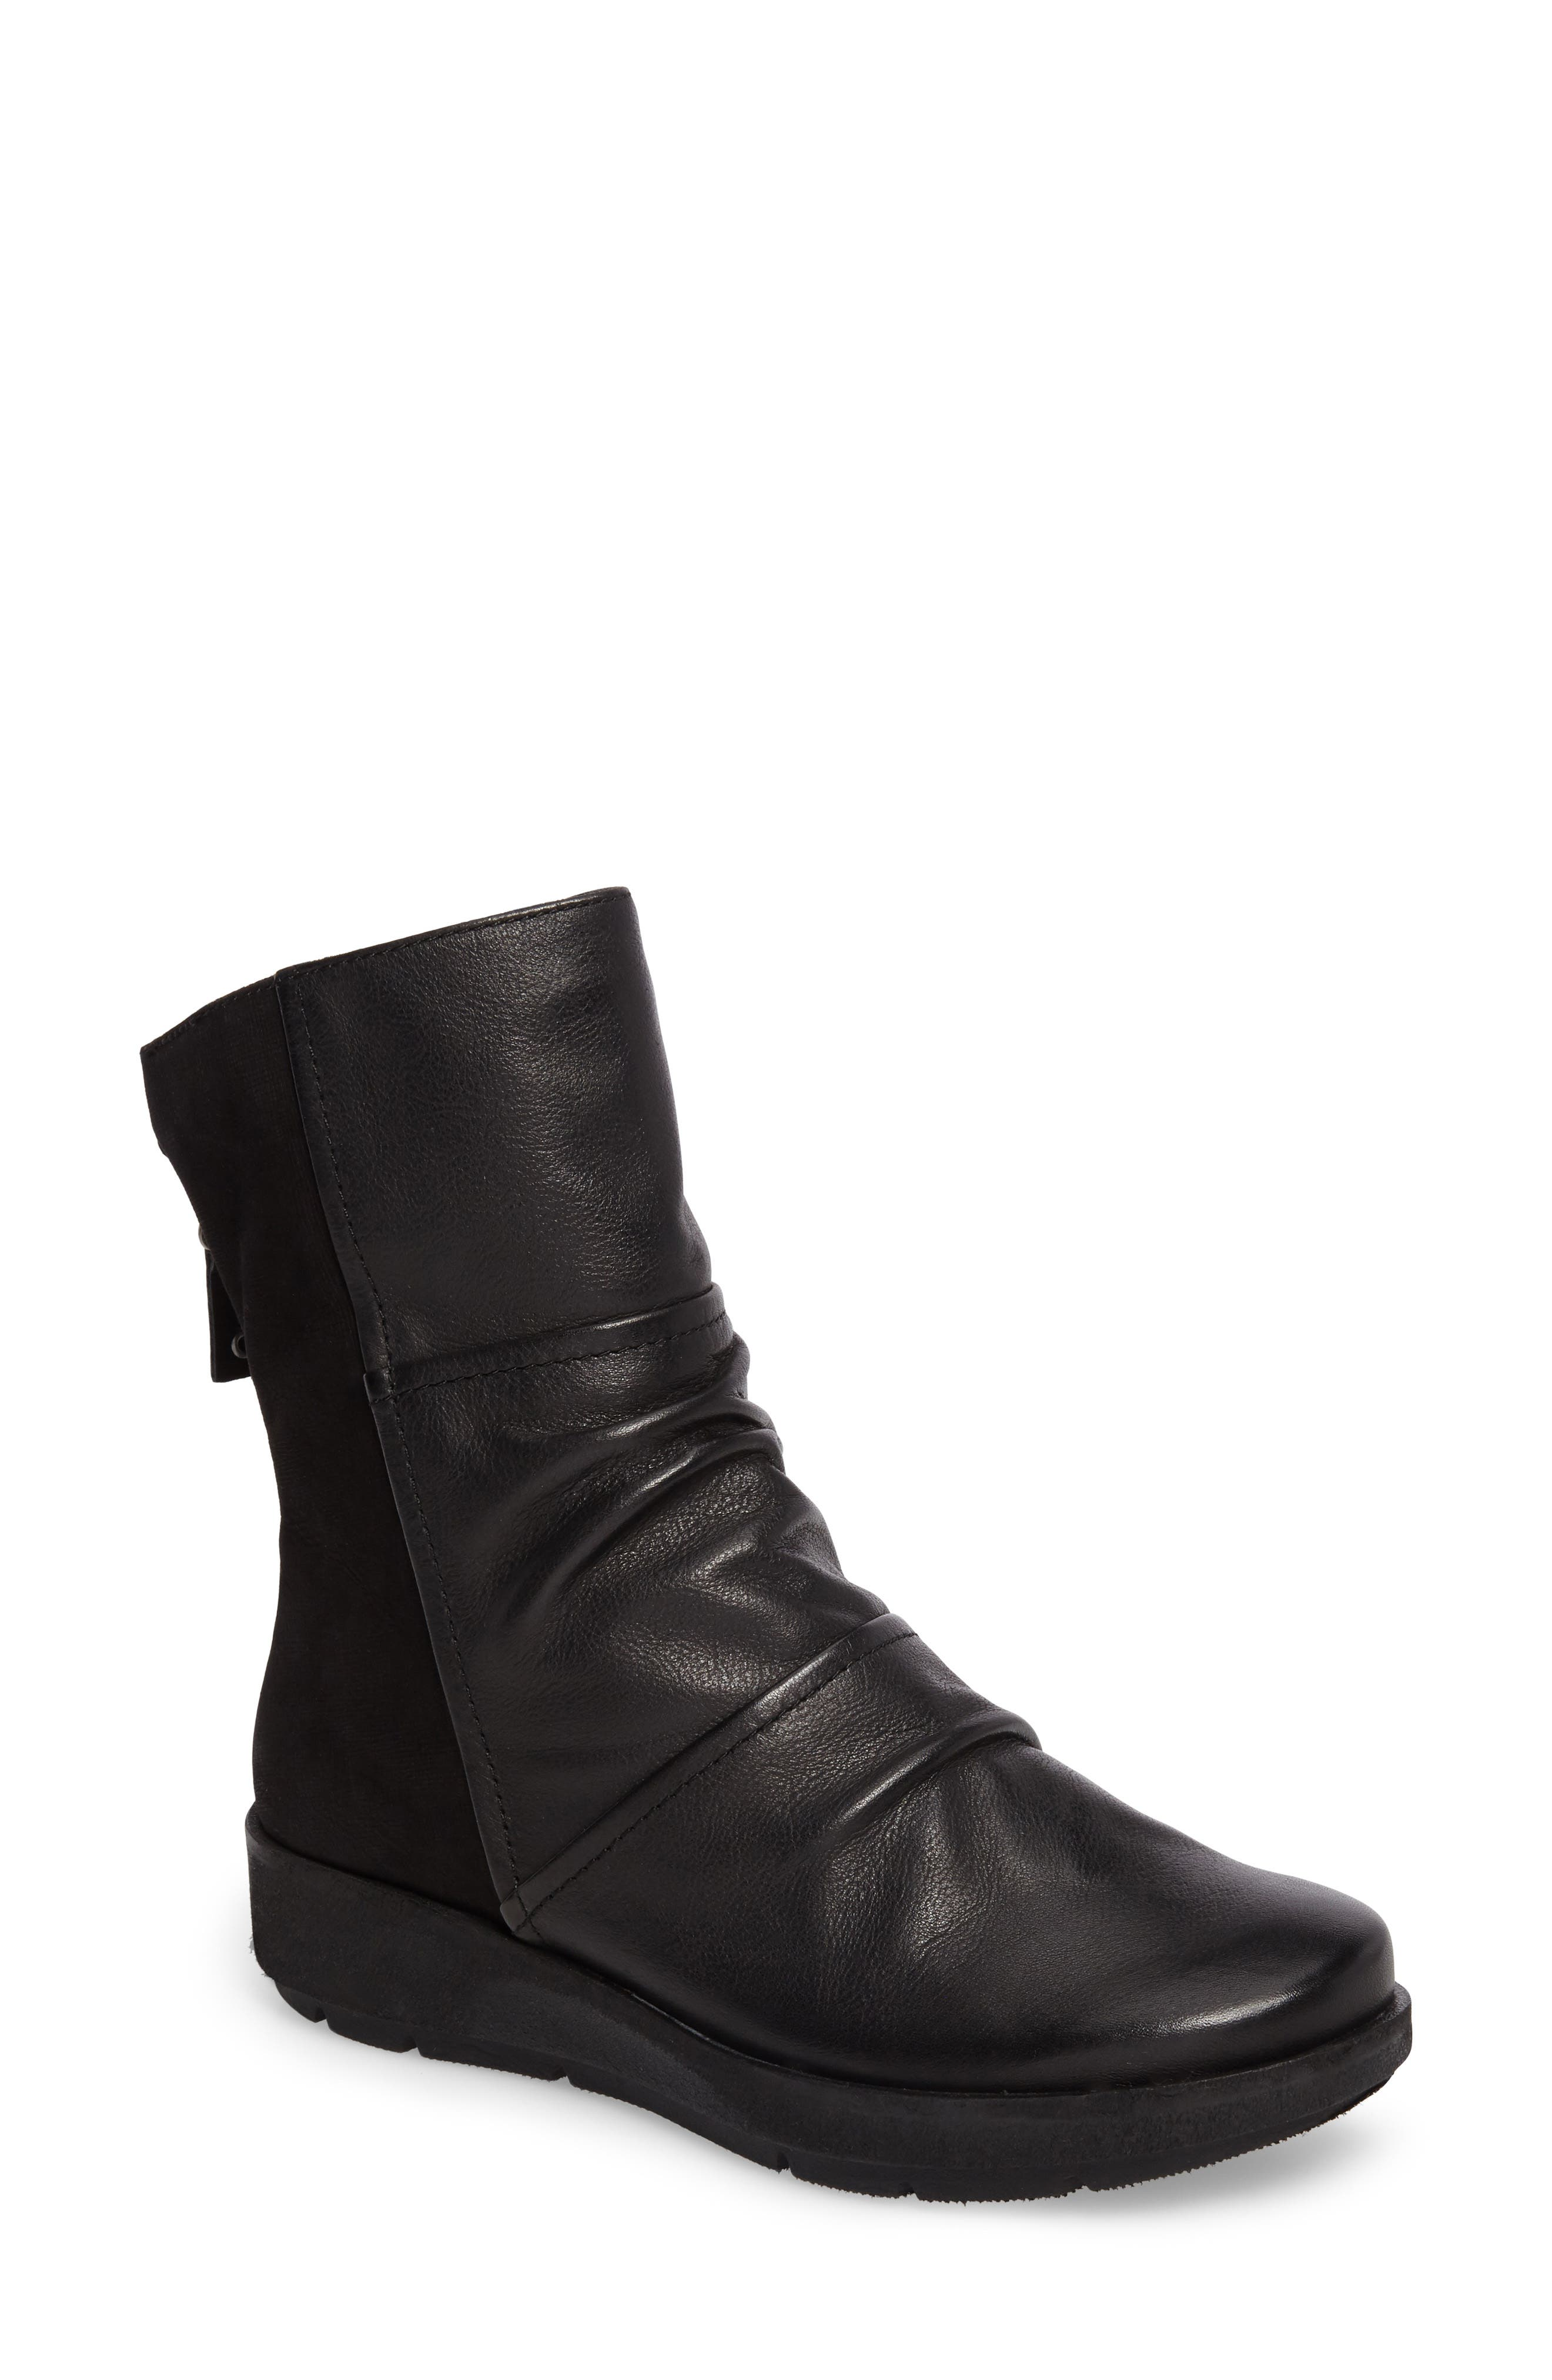 Pilgrim Boot,                             Main thumbnail 1, color,                             Black Leather